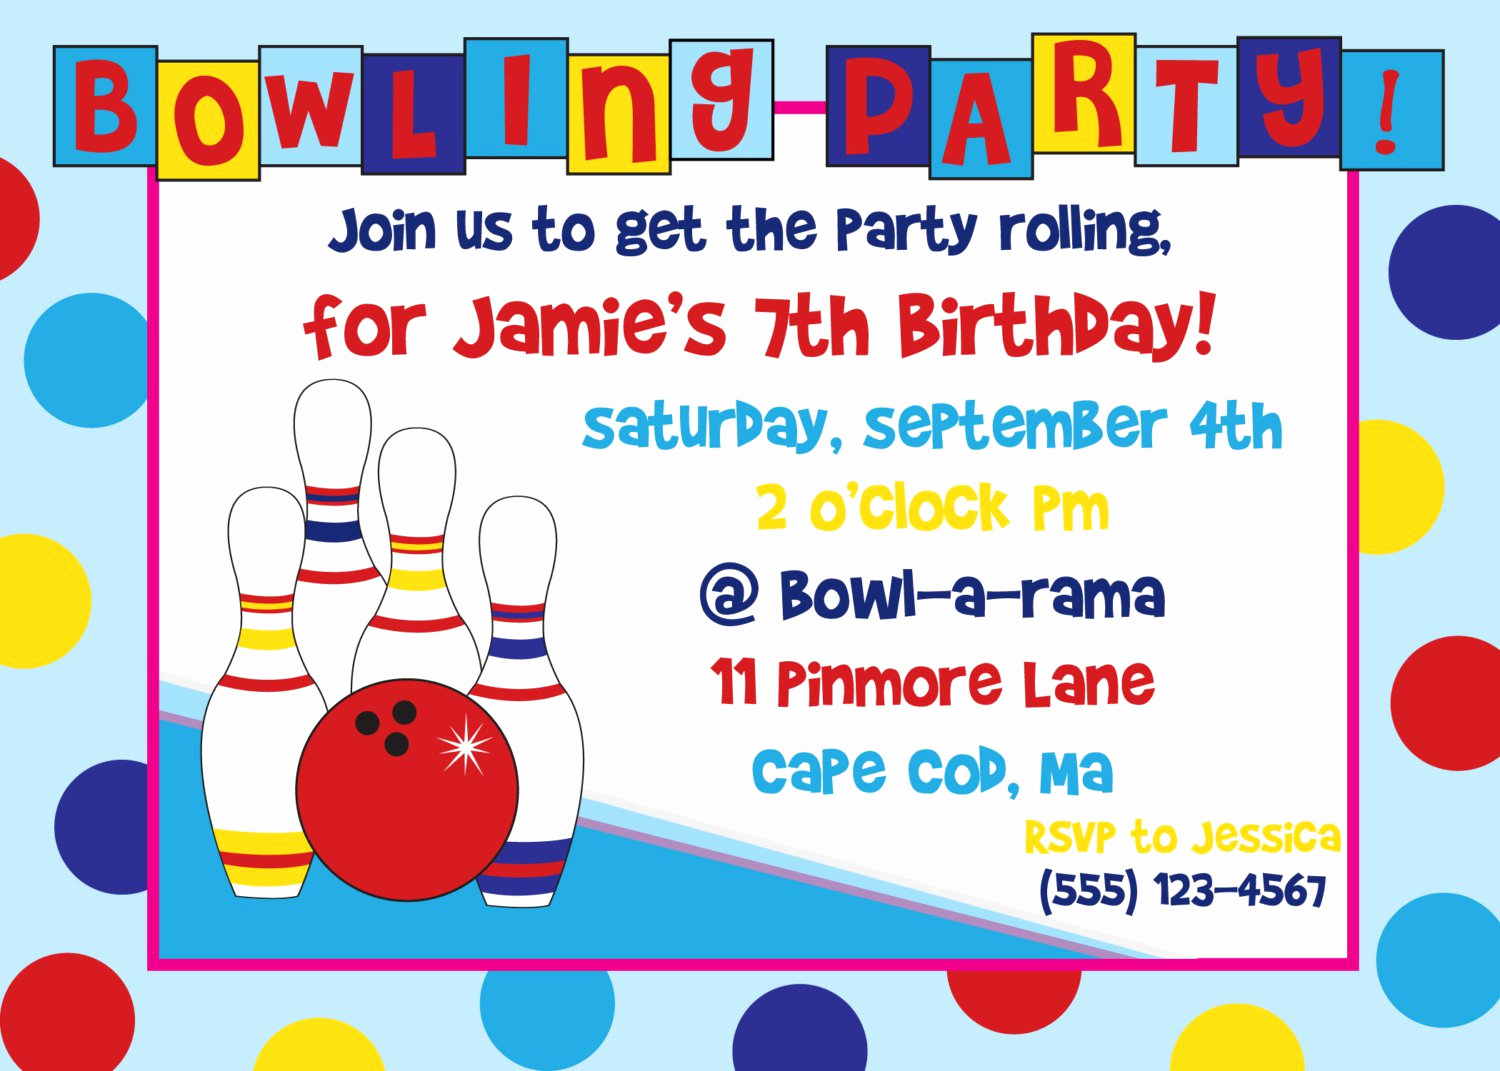 Bowling Party Invitation Templates Free Luxury Bowling Birthday Party Invitations Free Templates